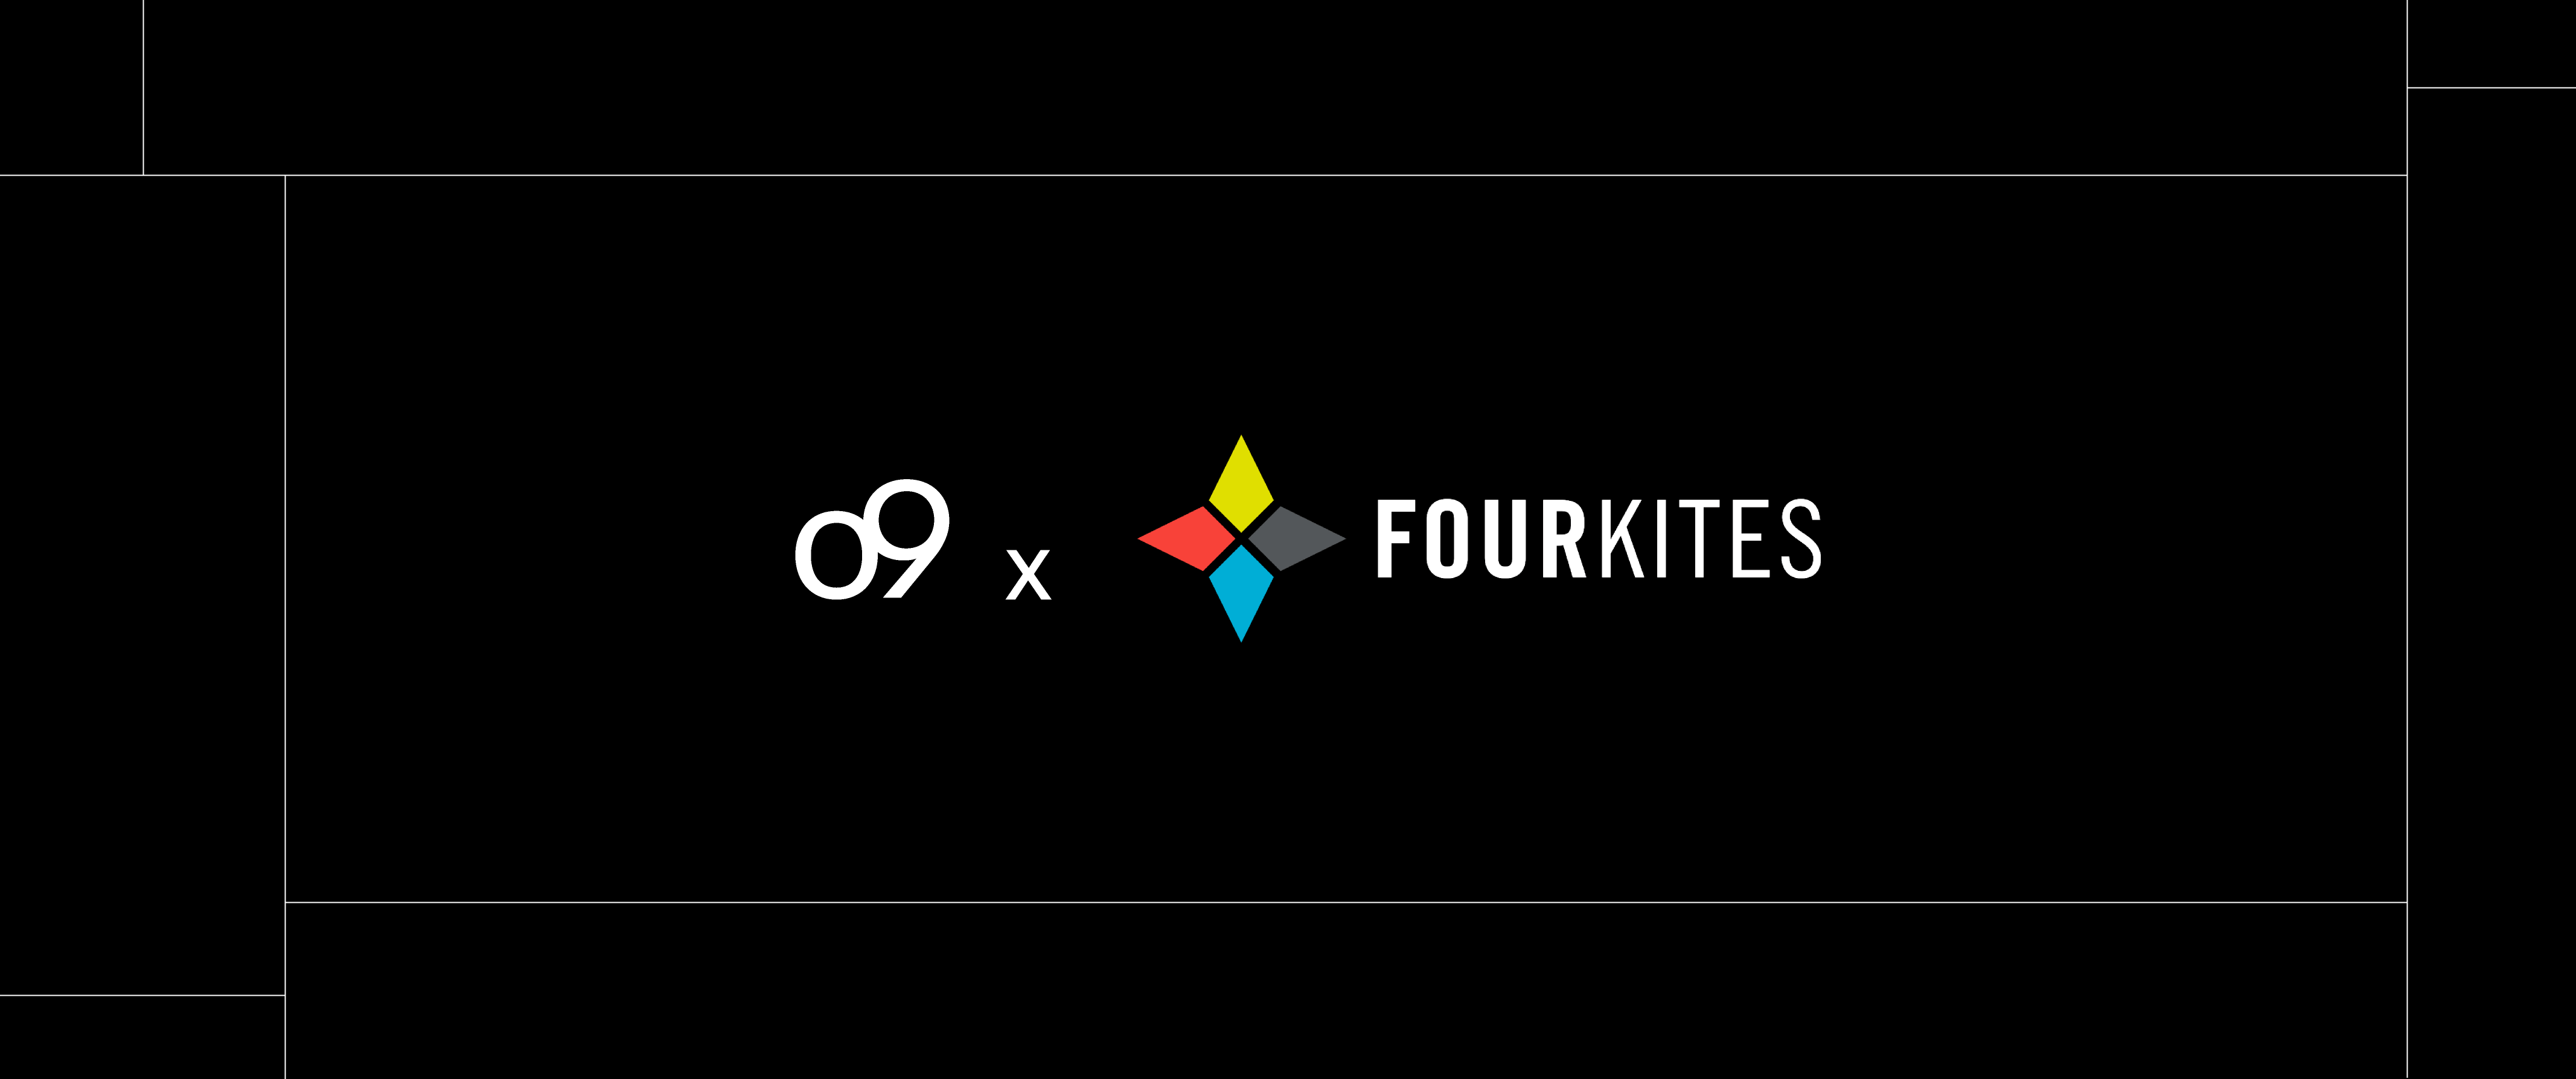 o9 Solutions and FourKites partner to bring unprecedented connectivity between freight visibility and planning Control Towers